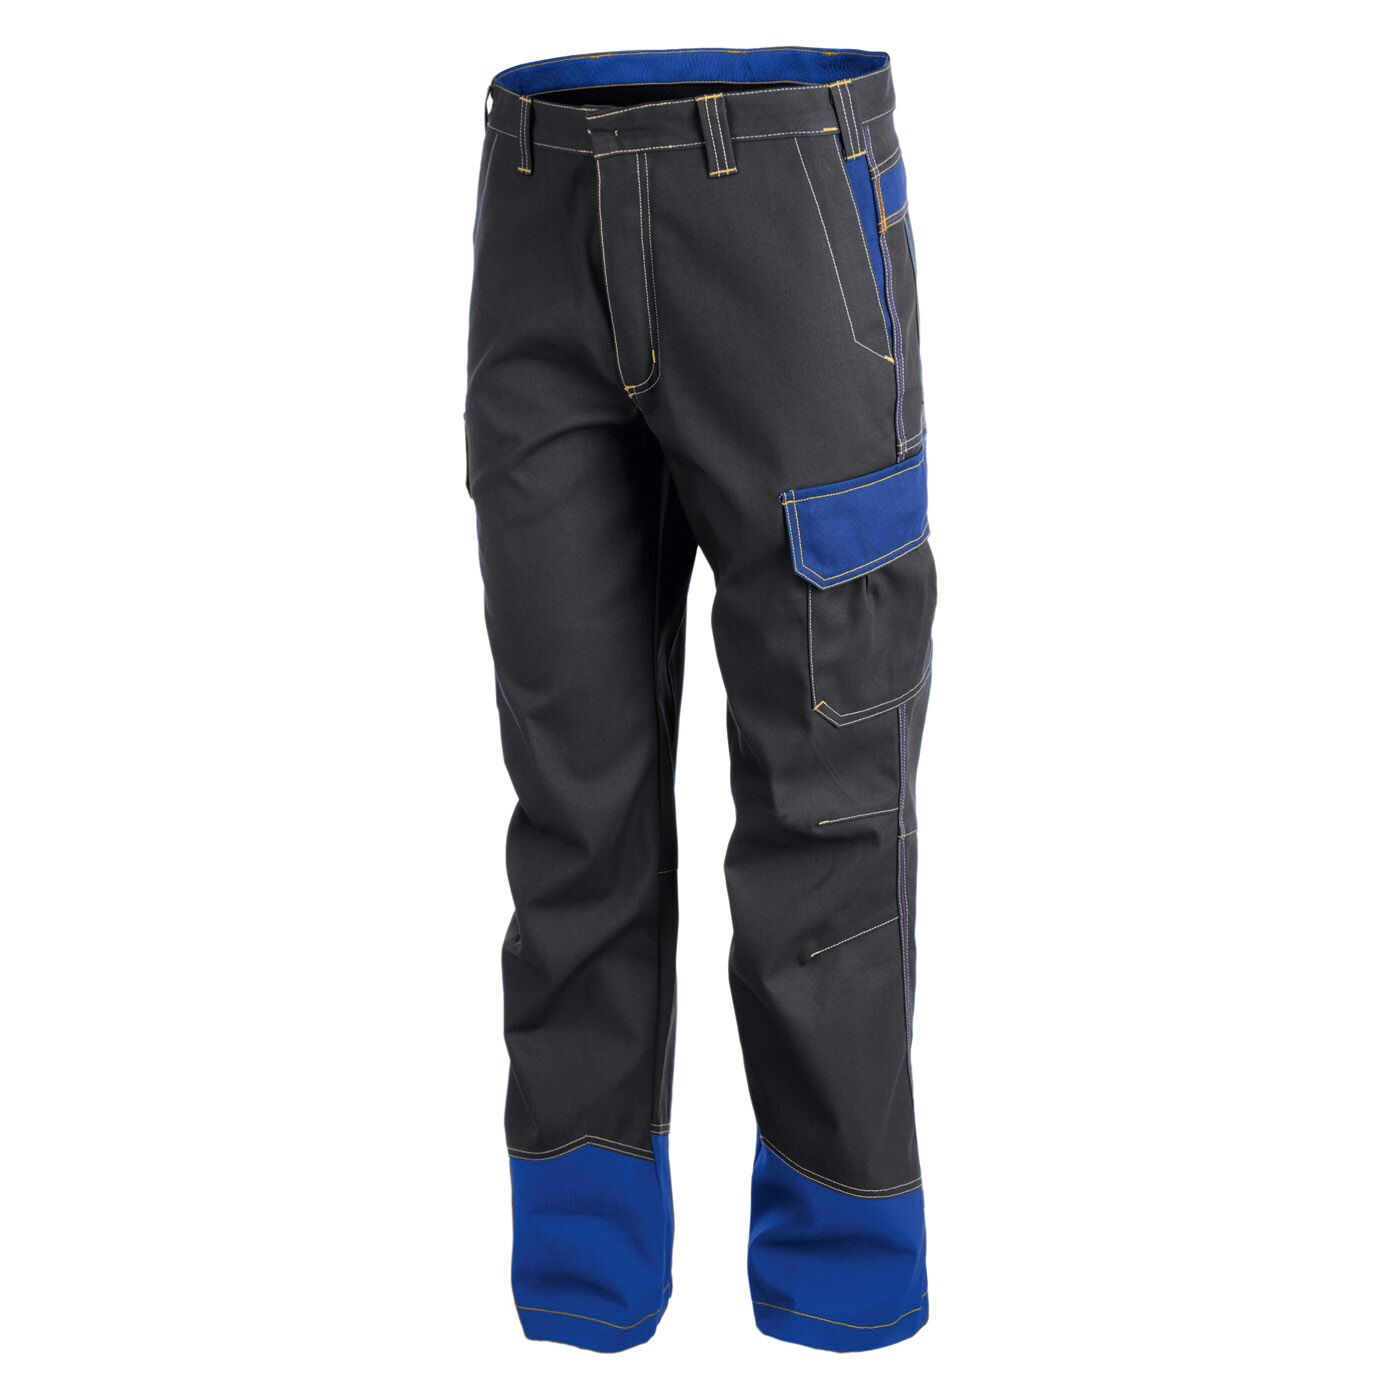 KÜBLER SAFETY 6 Broek PBM 3